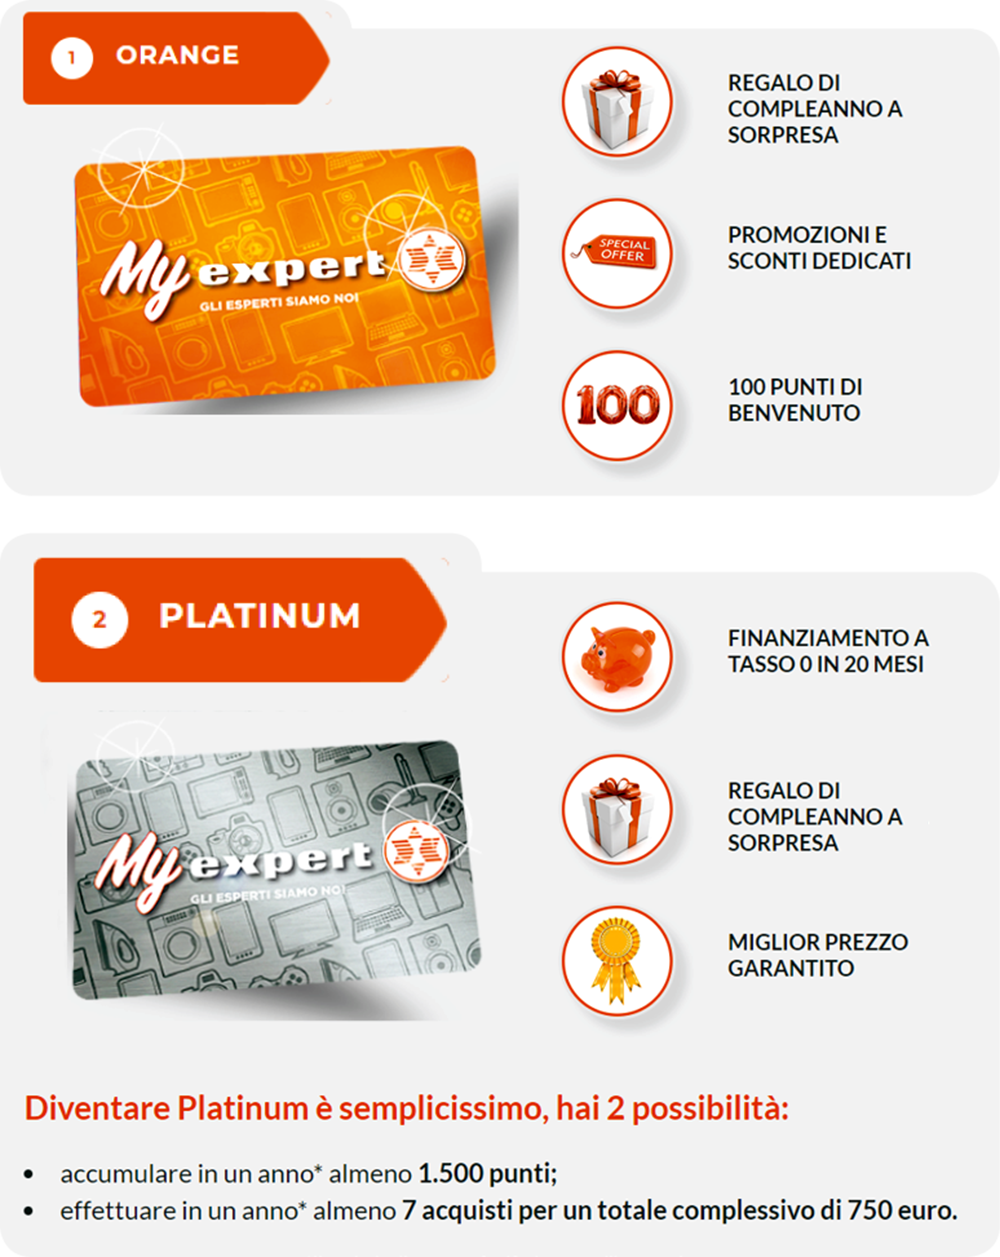 orange2 platinum4